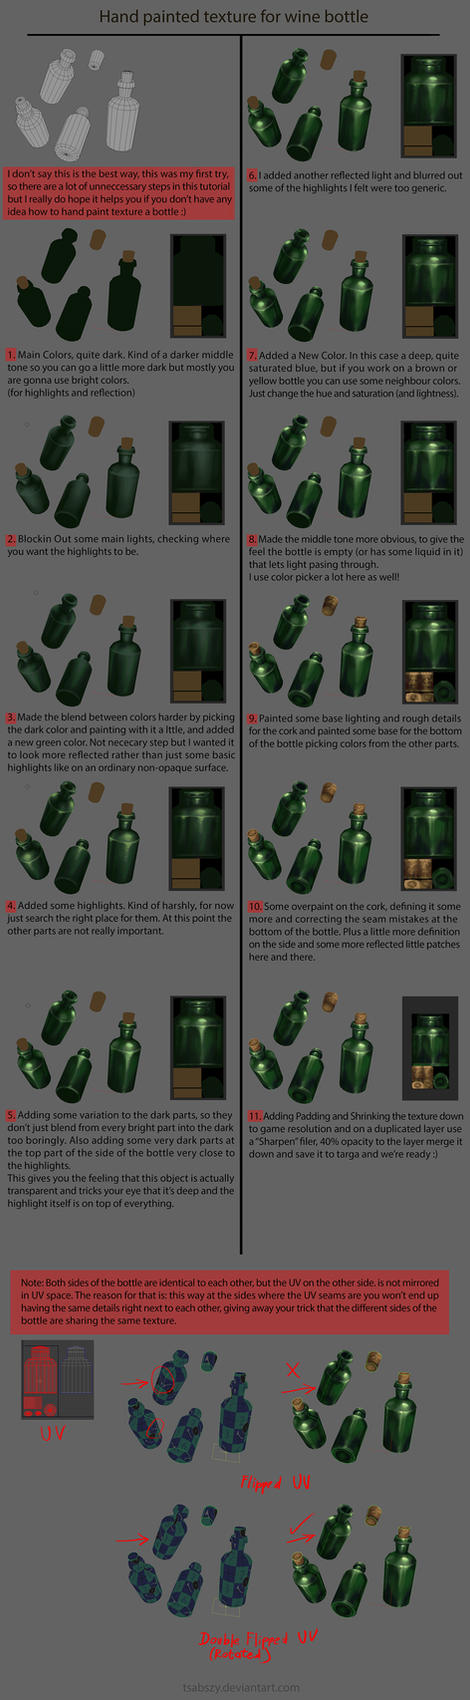 hand_painted_texturing_tutorial__wine_bottle_by_tsabszy-d7pnpcx.jpg